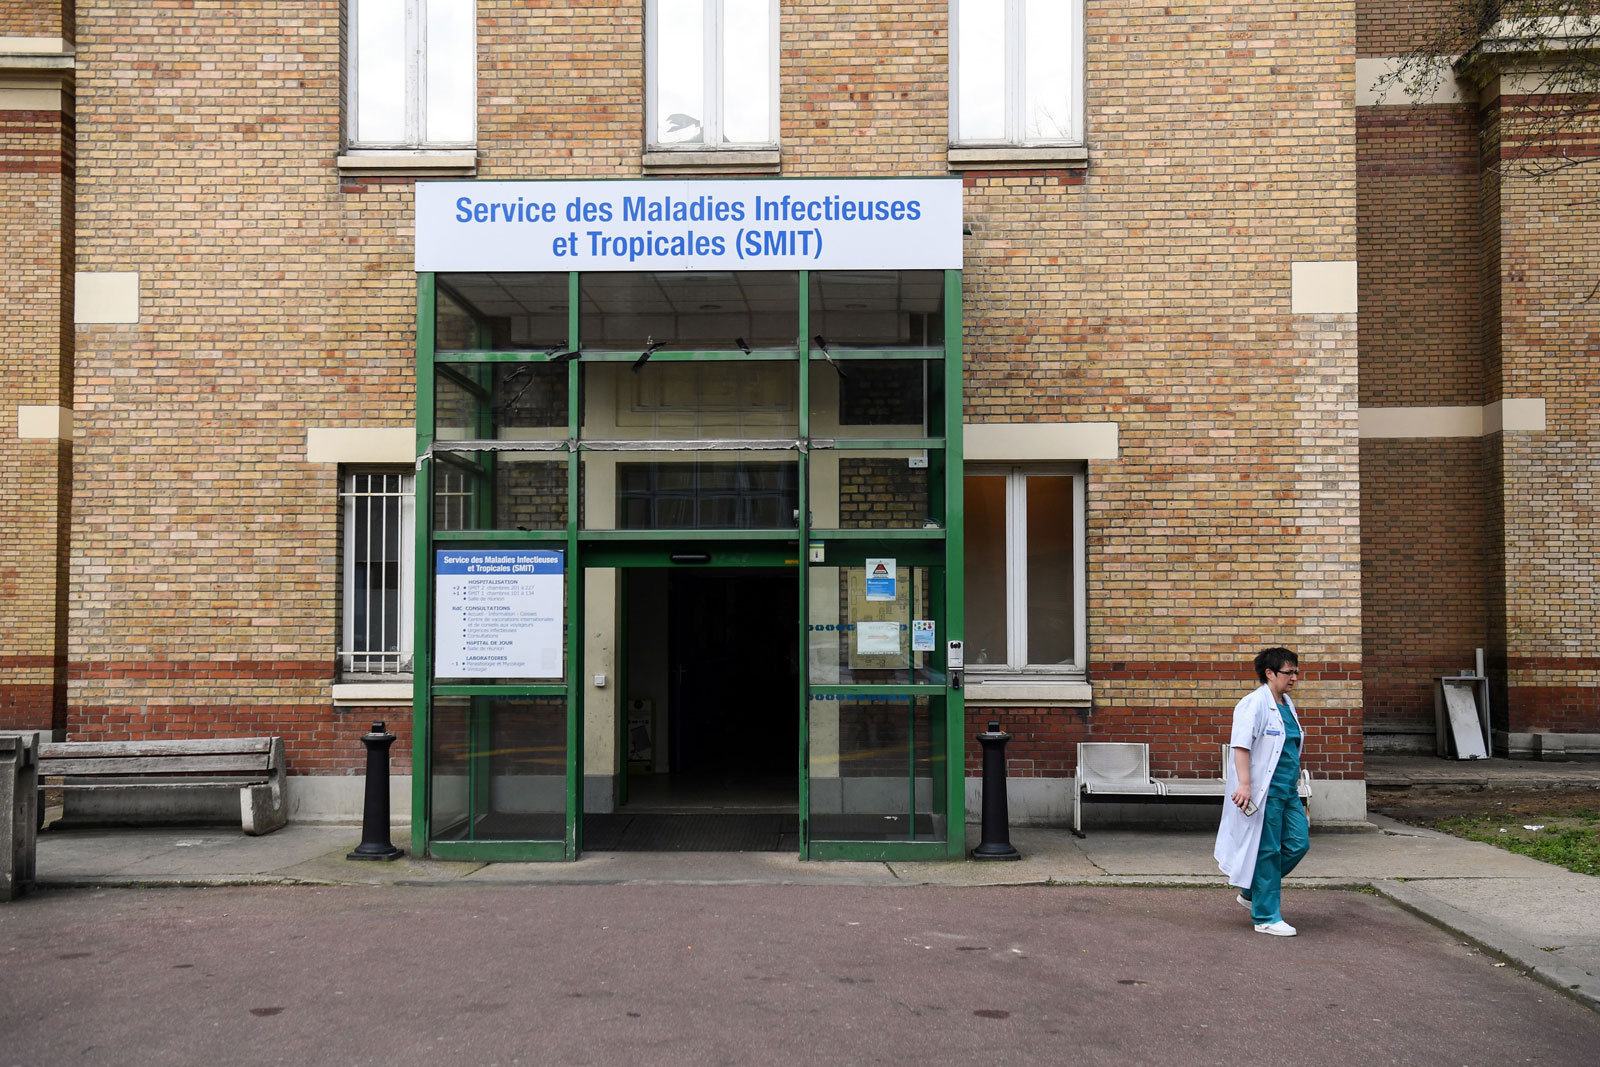 The Service des Maladies Infectieuses et Tropicales (Infectious and Tropical Diseases Unit) of the Bichat hospital in Paris, France, on January 25.